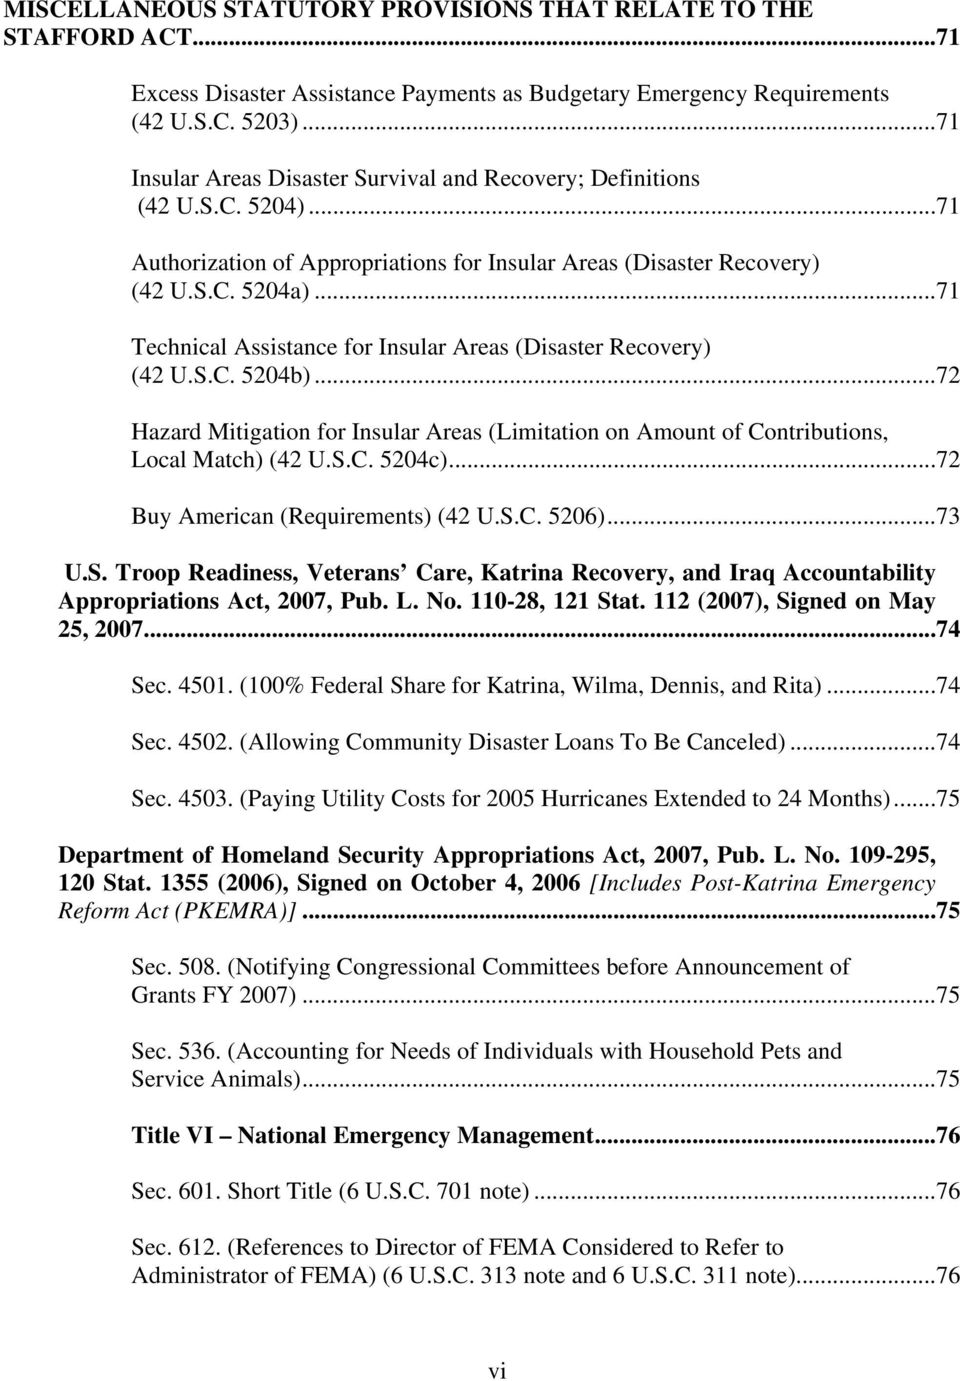 ..71 Technical Assistance for Insular Areas (Disaster Recovery) (42 U.S.C. 5204b)...72 Hazard Mitigation for Insular Areas (Limitation on Amount of Contributions, Local Match) (42 U.S.C. 5204c).